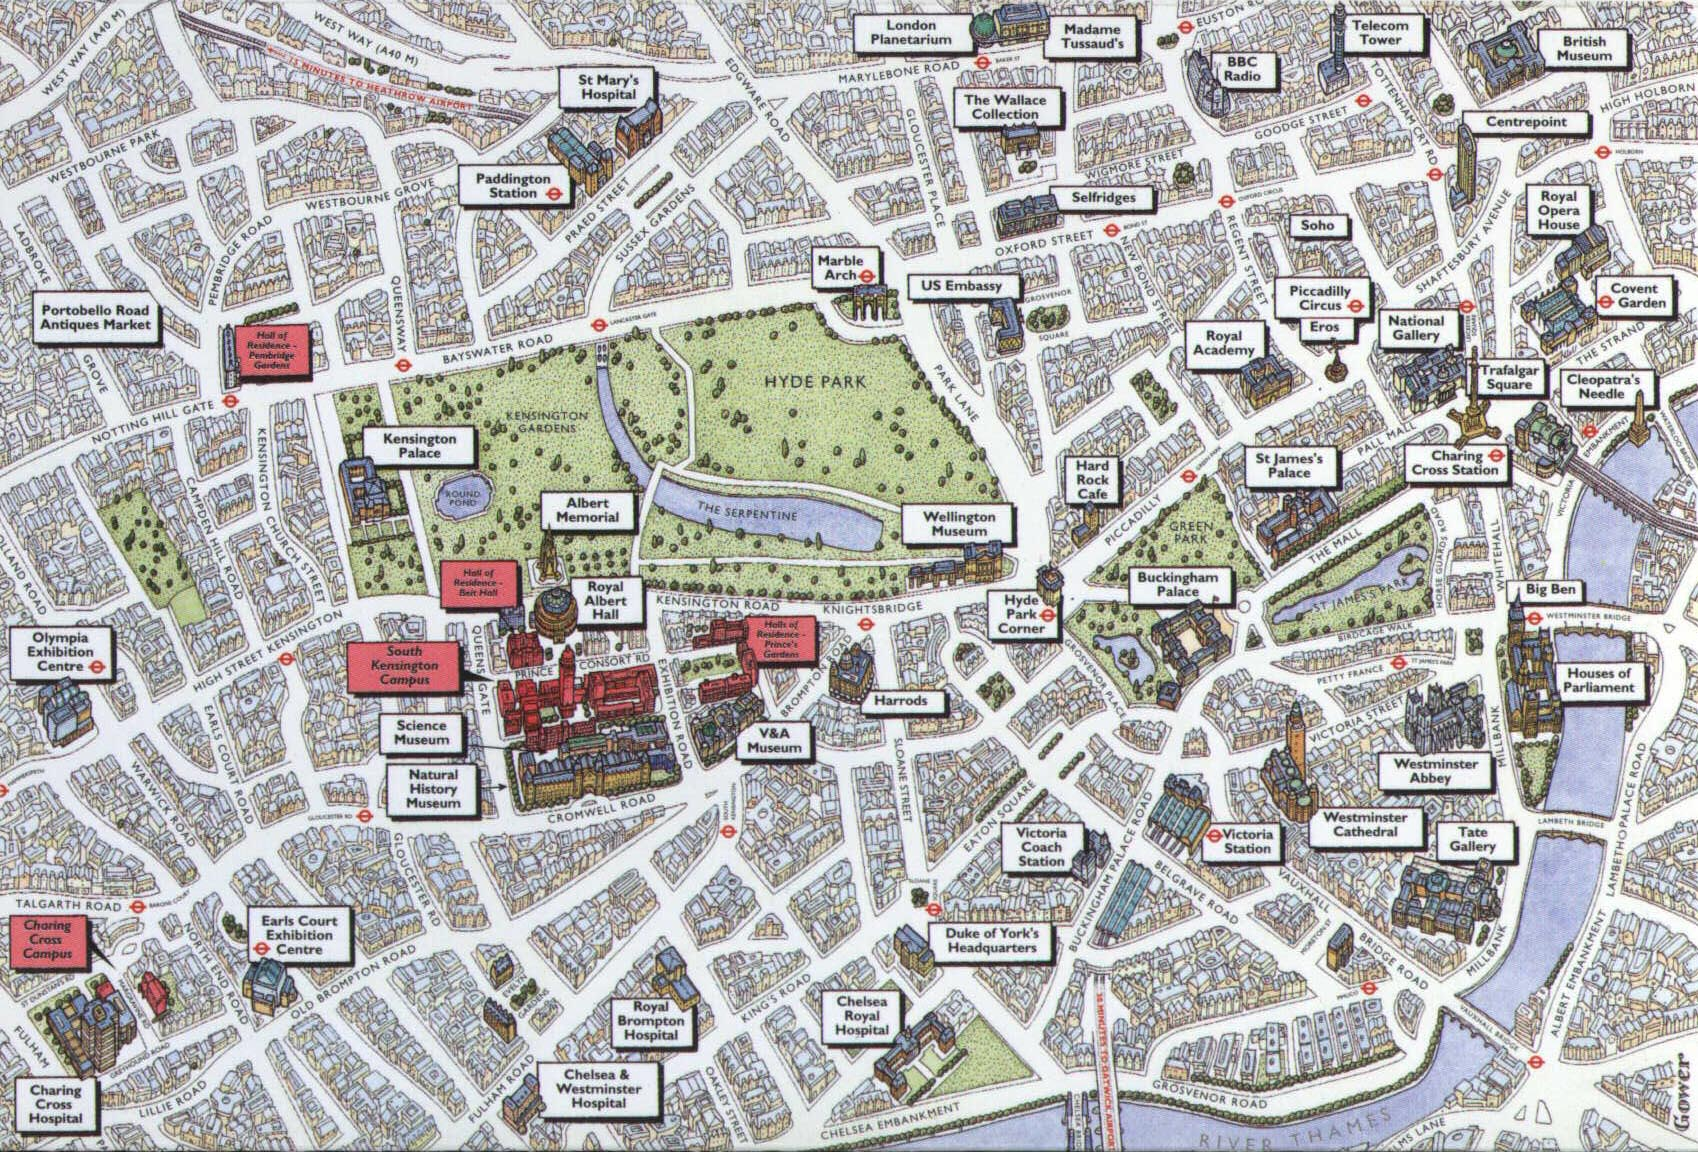 World Congress on Engineering 2015 – London Tourist Map With Tube Stations